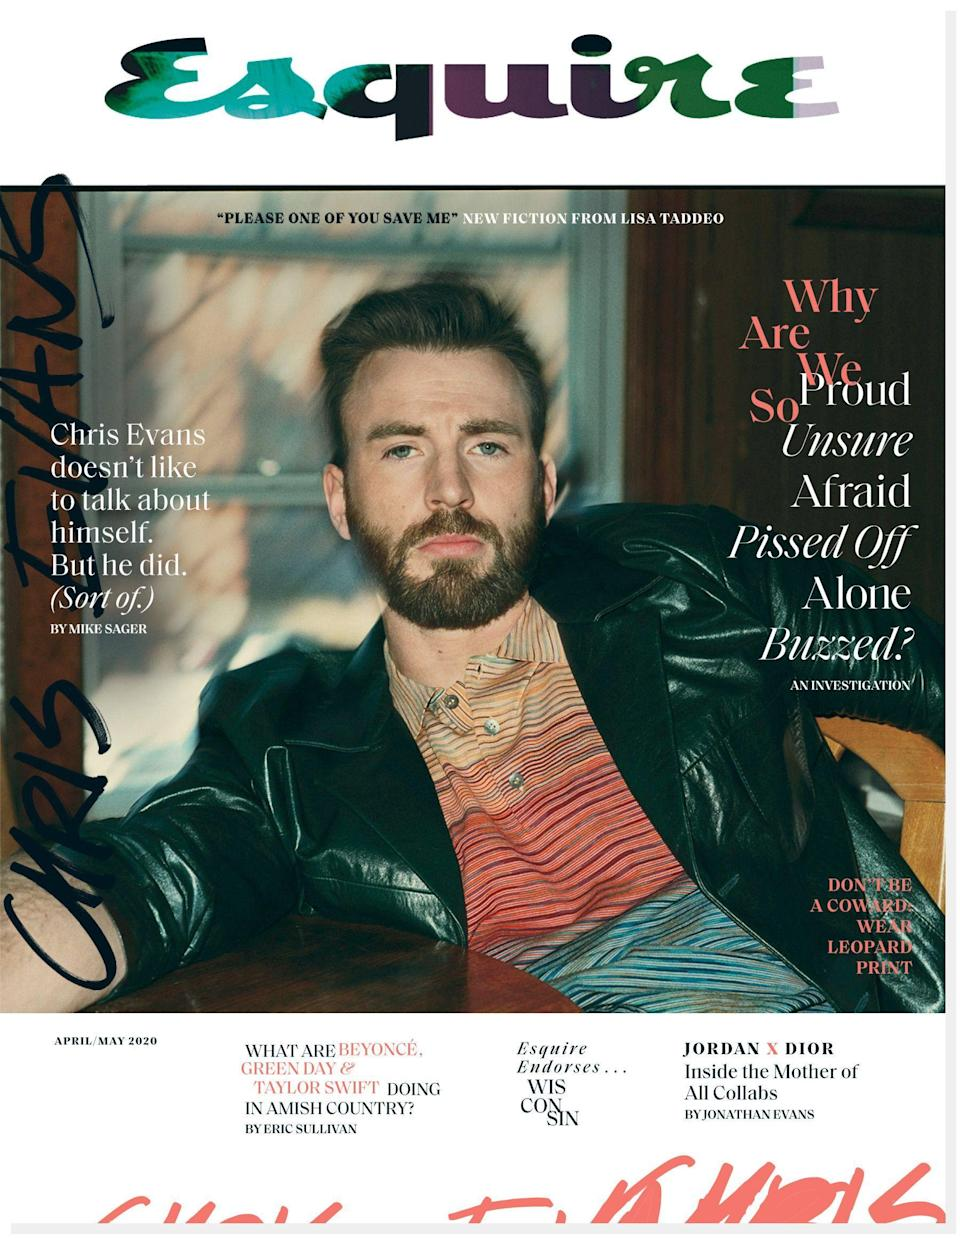 """<p>hearstmags.com</p><p><a href=""""https://subscribe.hearstmags.com/subscribe/splits/esquire/esq_sub_nav_link"""" rel=""""nofollow noopener"""" target=""""_blank"""" data-ylk=""""slk:One Year for Just $15"""" class=""""link rapid-noclick-resp"""">One Year for Just $15</a></p>"""